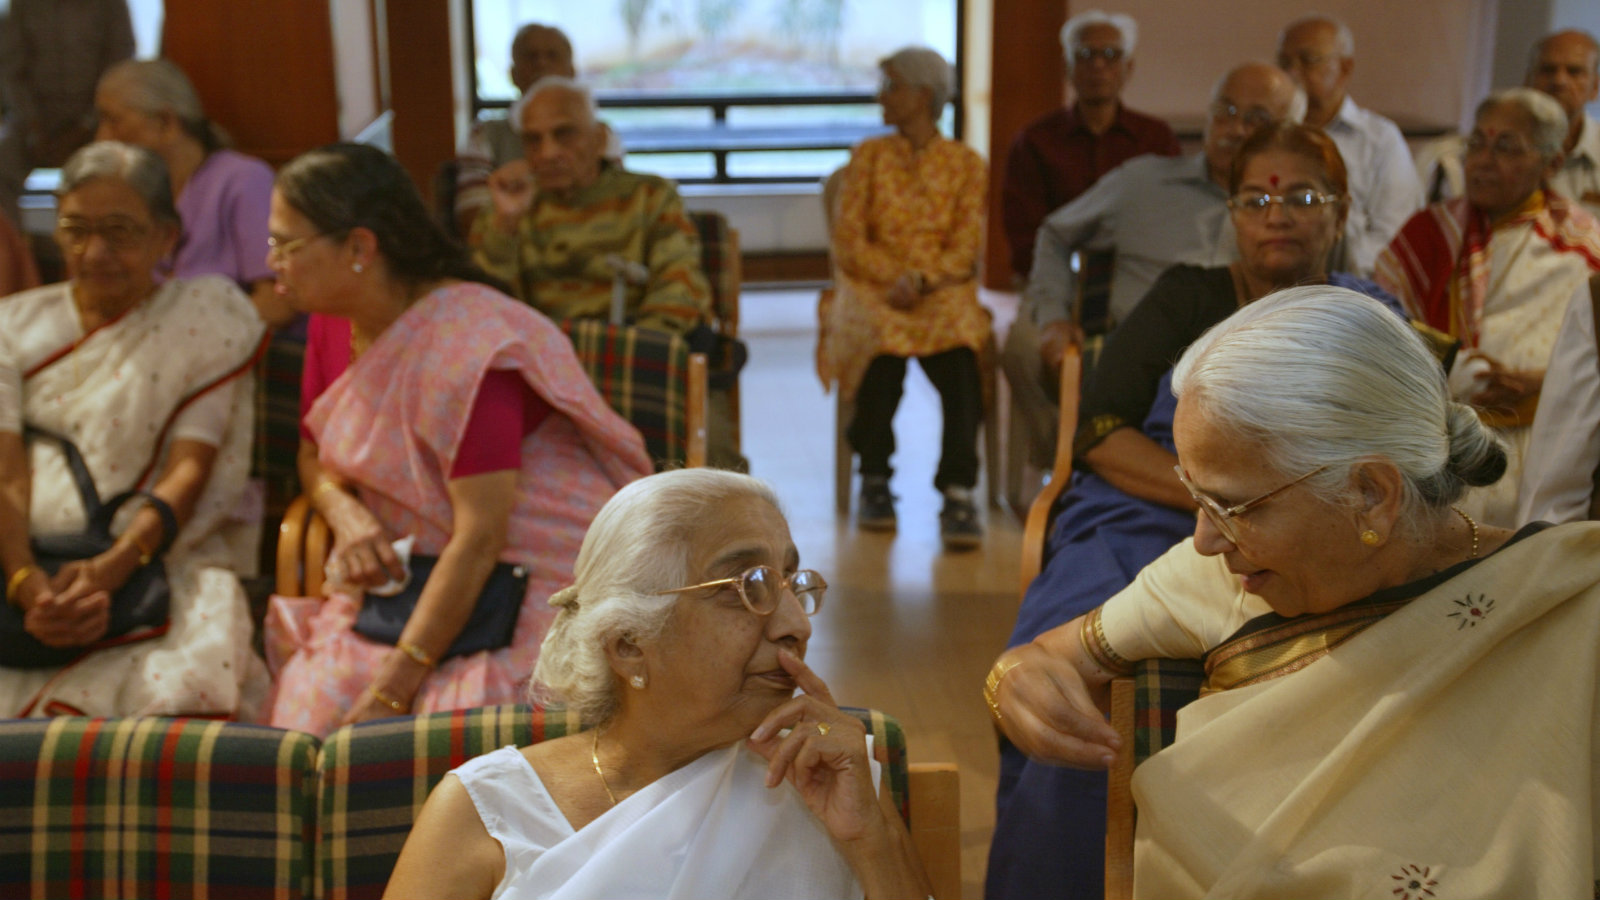 Residents of Athashri, a housing complex for senior citizens, interact in the community hall before a monthly meeting, in Pune, India, on Feb. 12, 2008. A cultural revolution is under way in India, led by an unlikely gray-haired vanguard that is dramatically changing what it means to be old here, and what it means to be a family. In a country where family is society's strongest cultural pillar, the thought of the elderly living alone has long been anathema, but many old people today are embracing the notion.